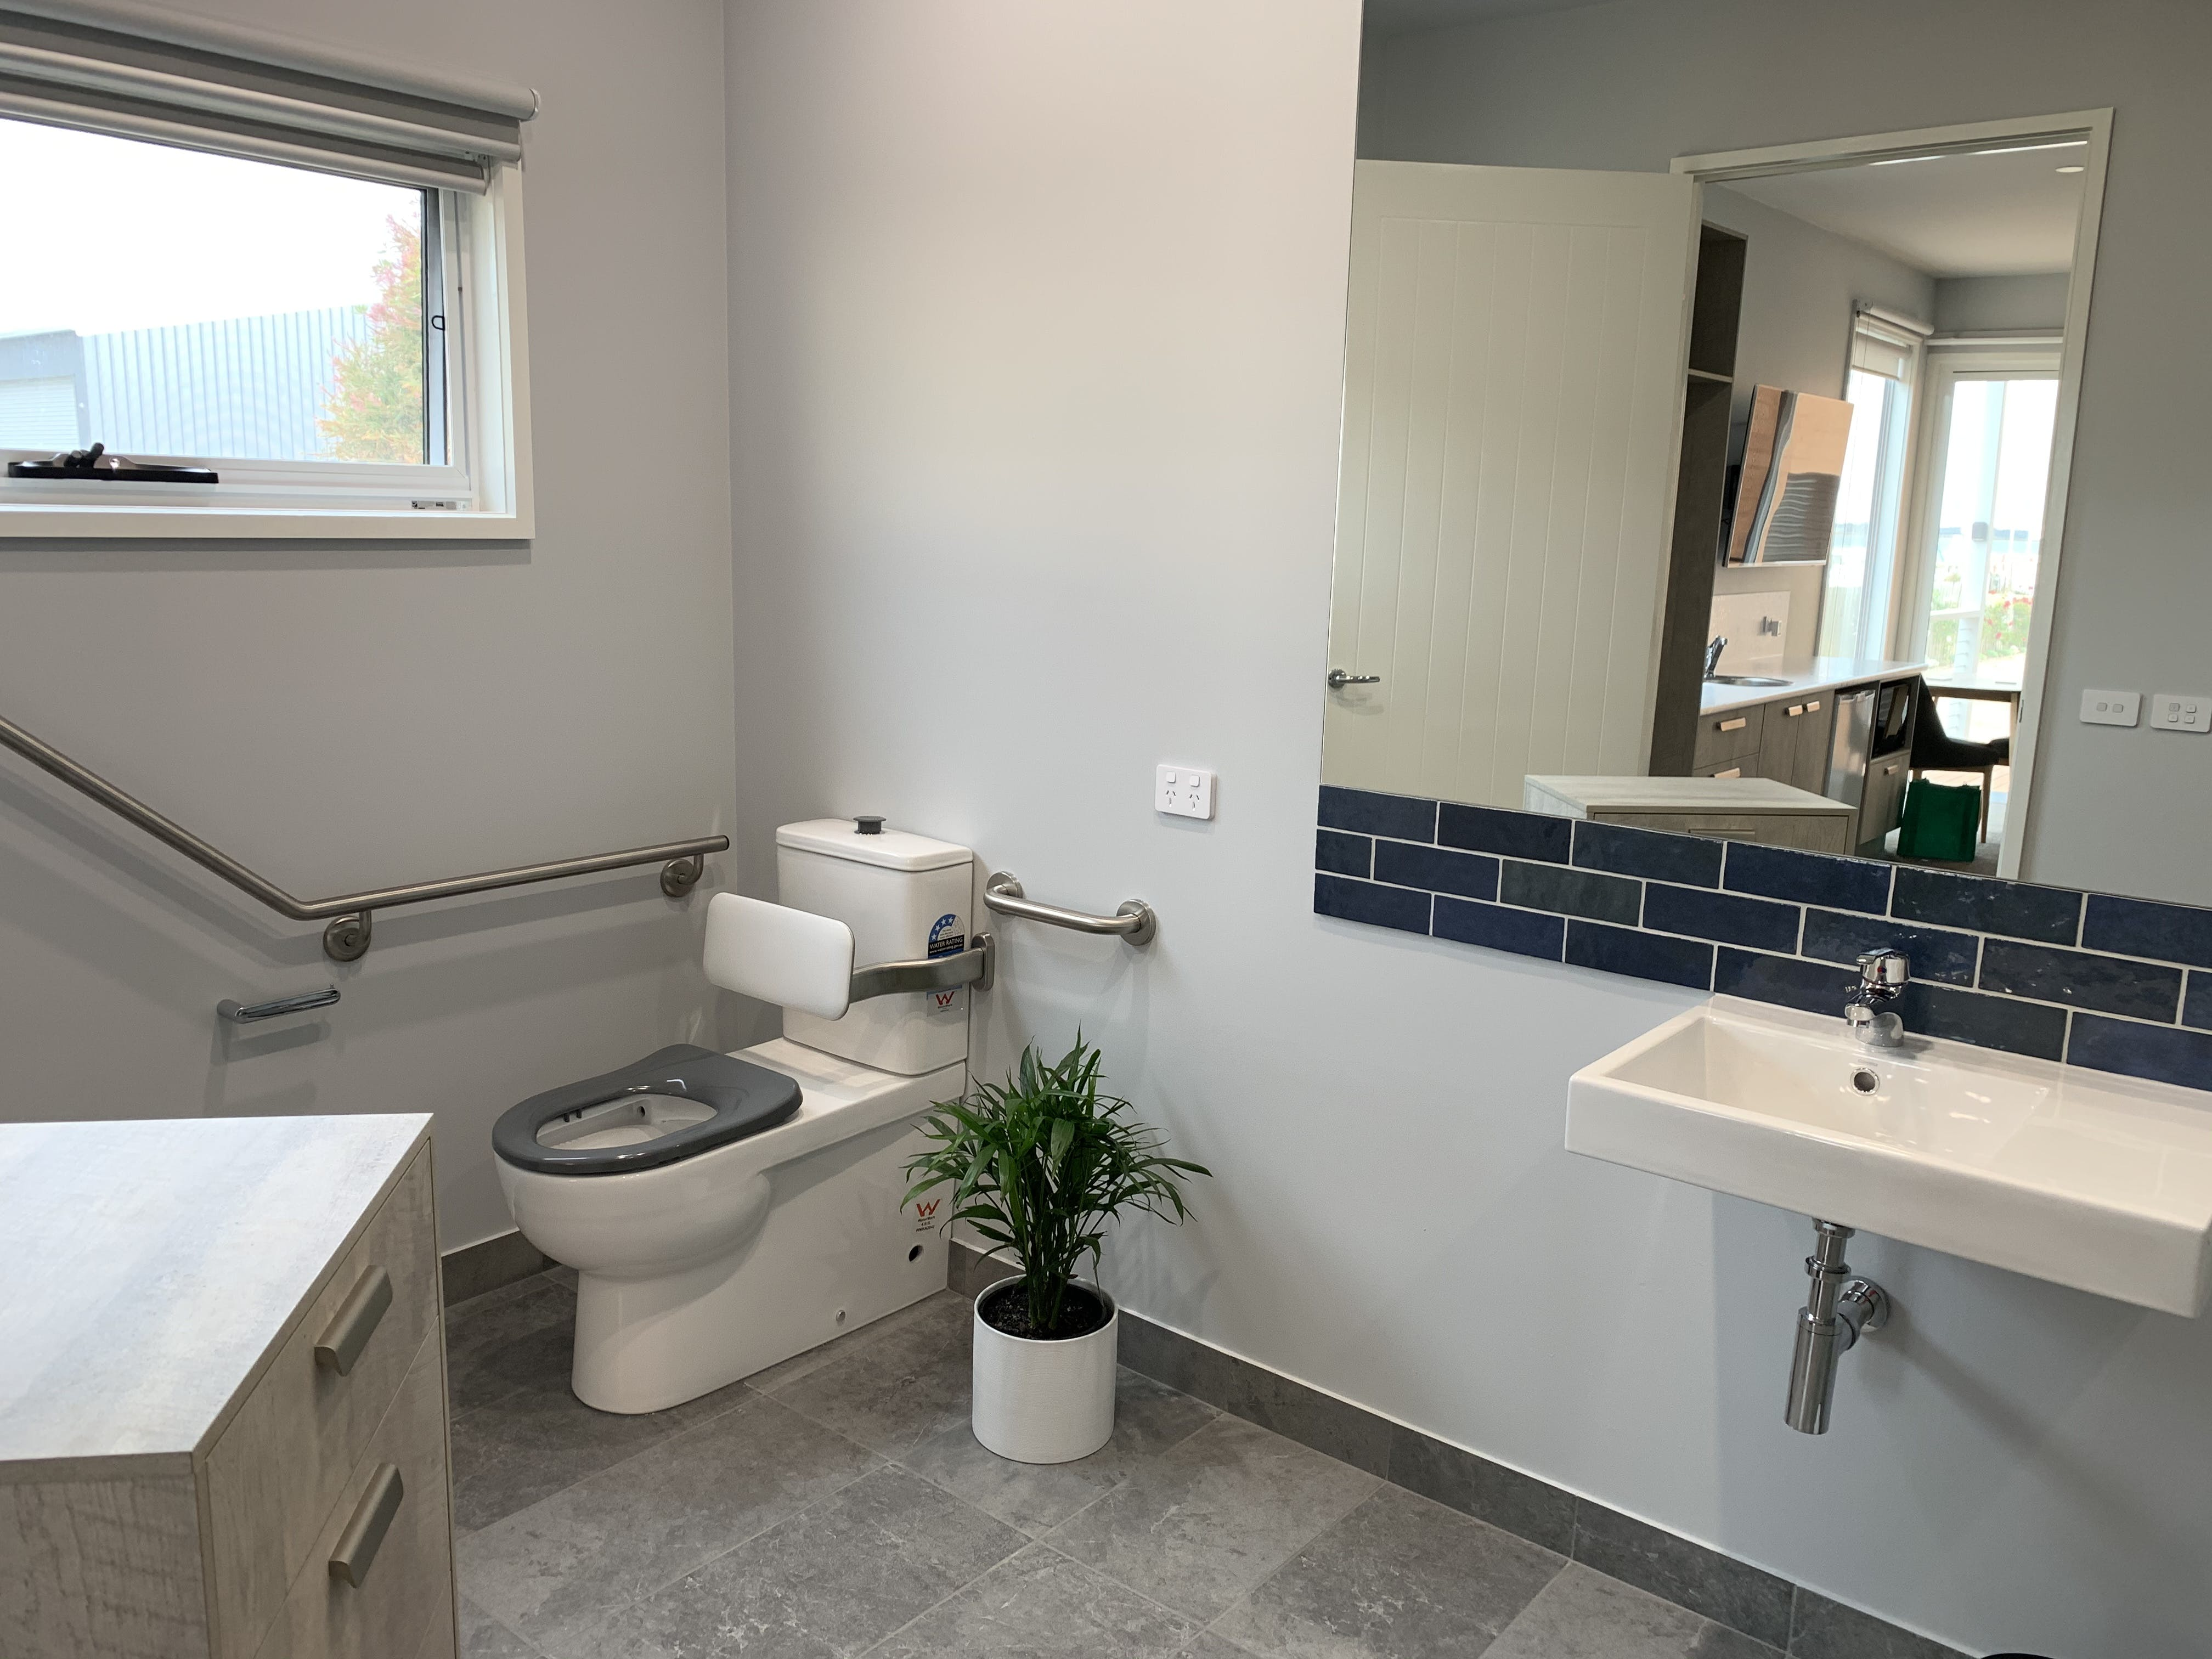 Studio 2 Wheelchair friendly/accessible bathroom